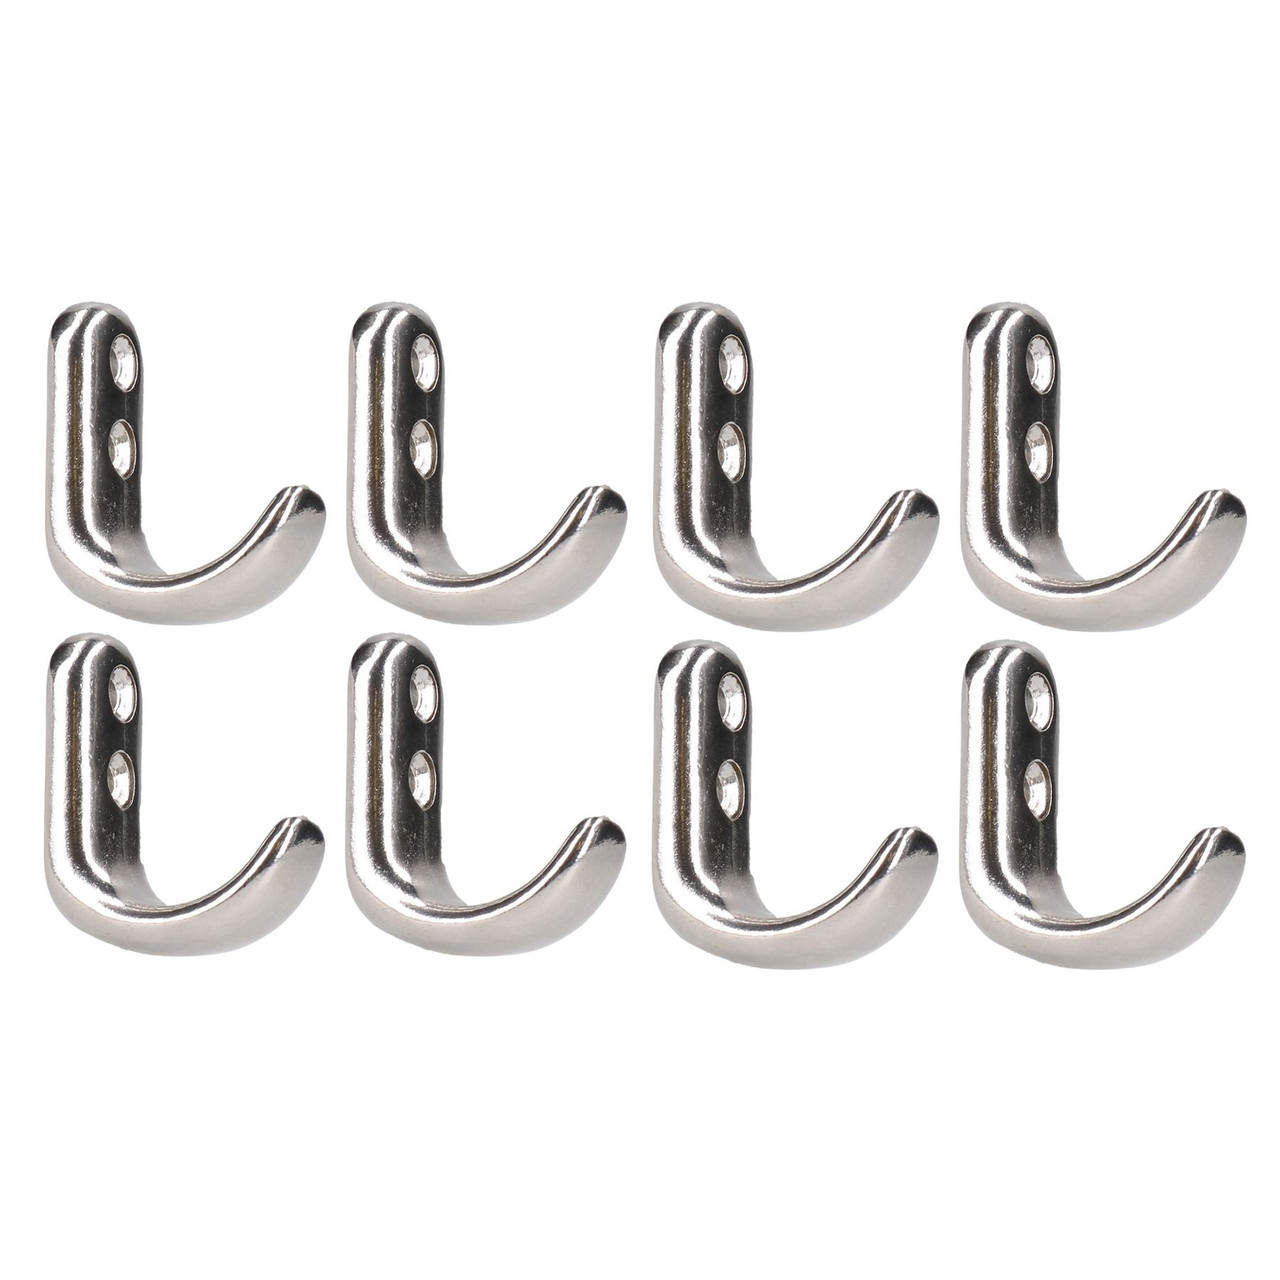 Stainless Steel Tie Down Anchor Hook Polished Marine Grade 316 8 PACK